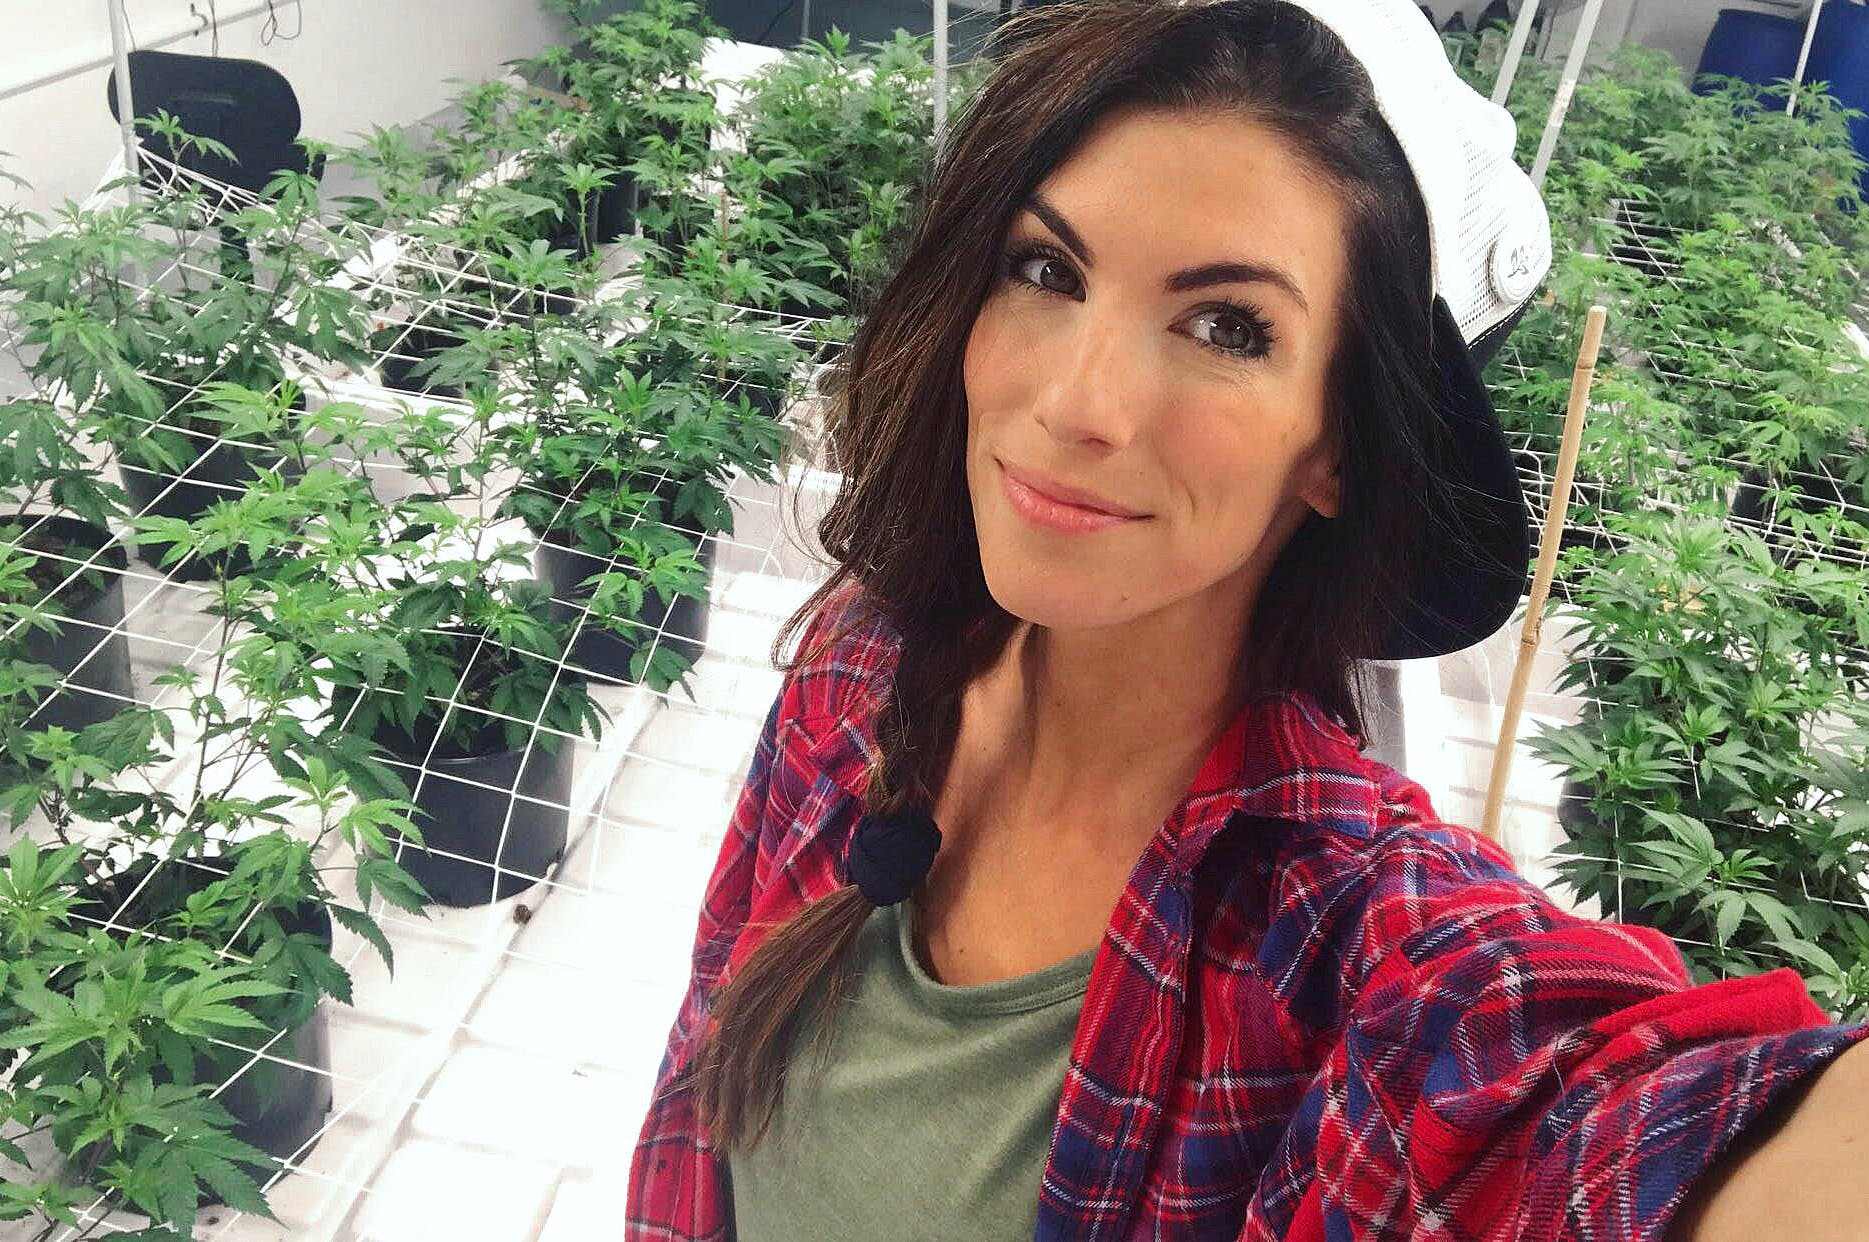 Meowy1 The 5 most badass women in weed